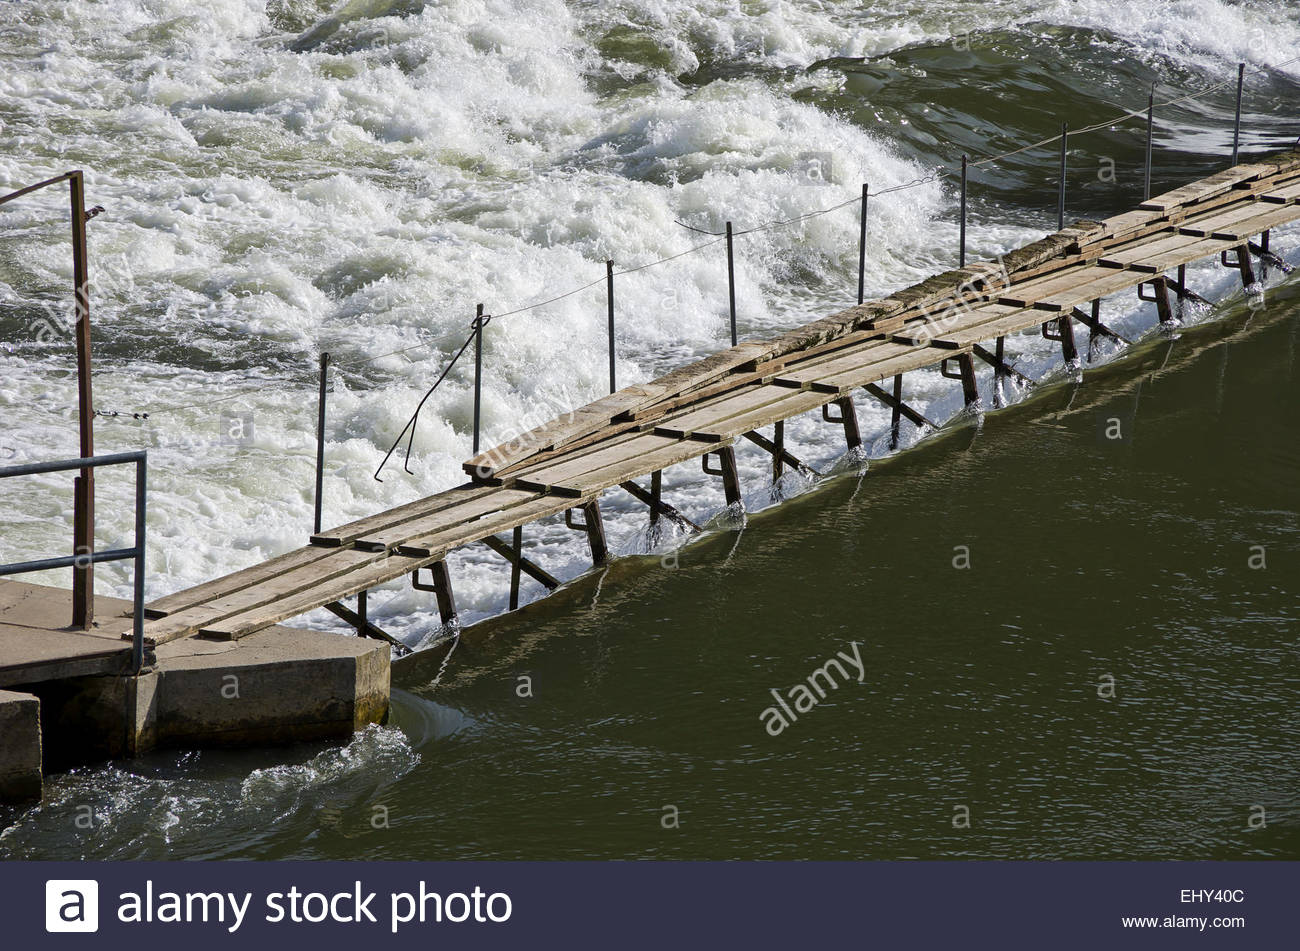 Weir In A River. - Stock Image